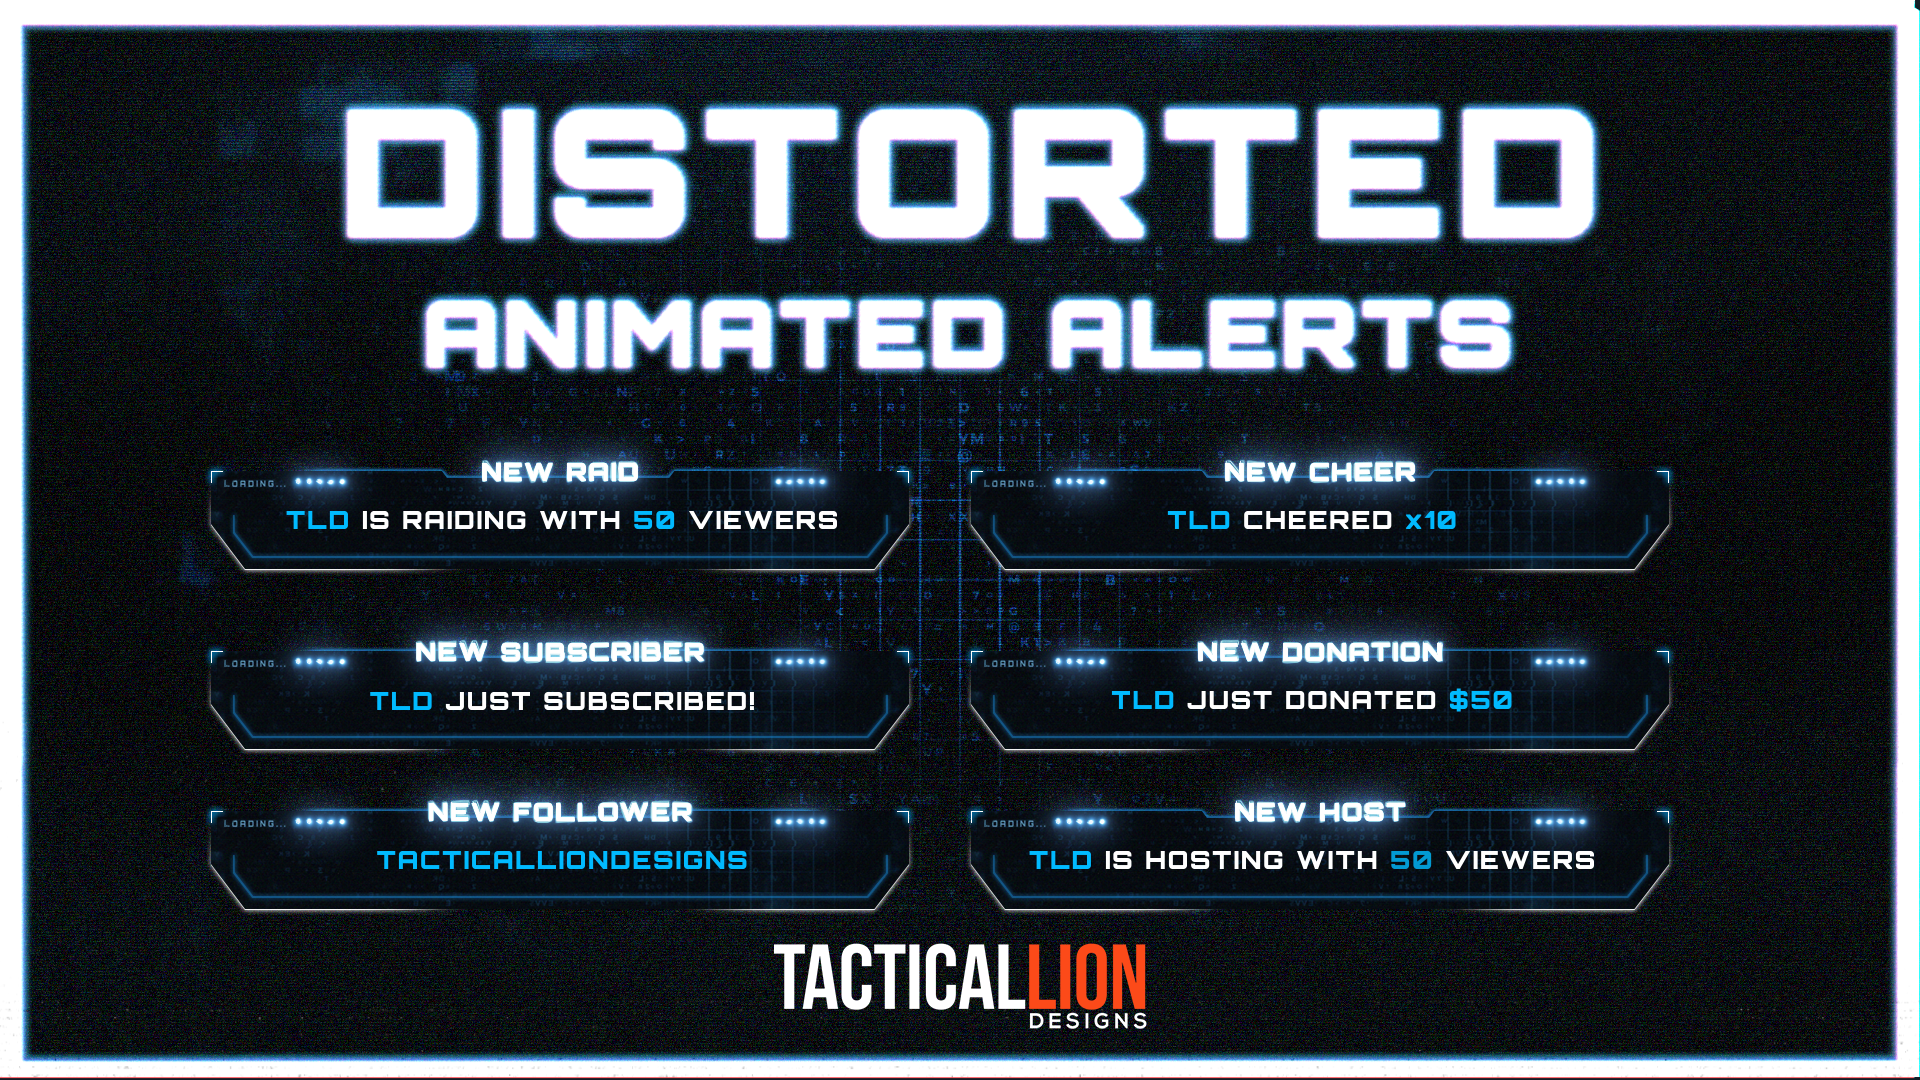 stream alerts distorted